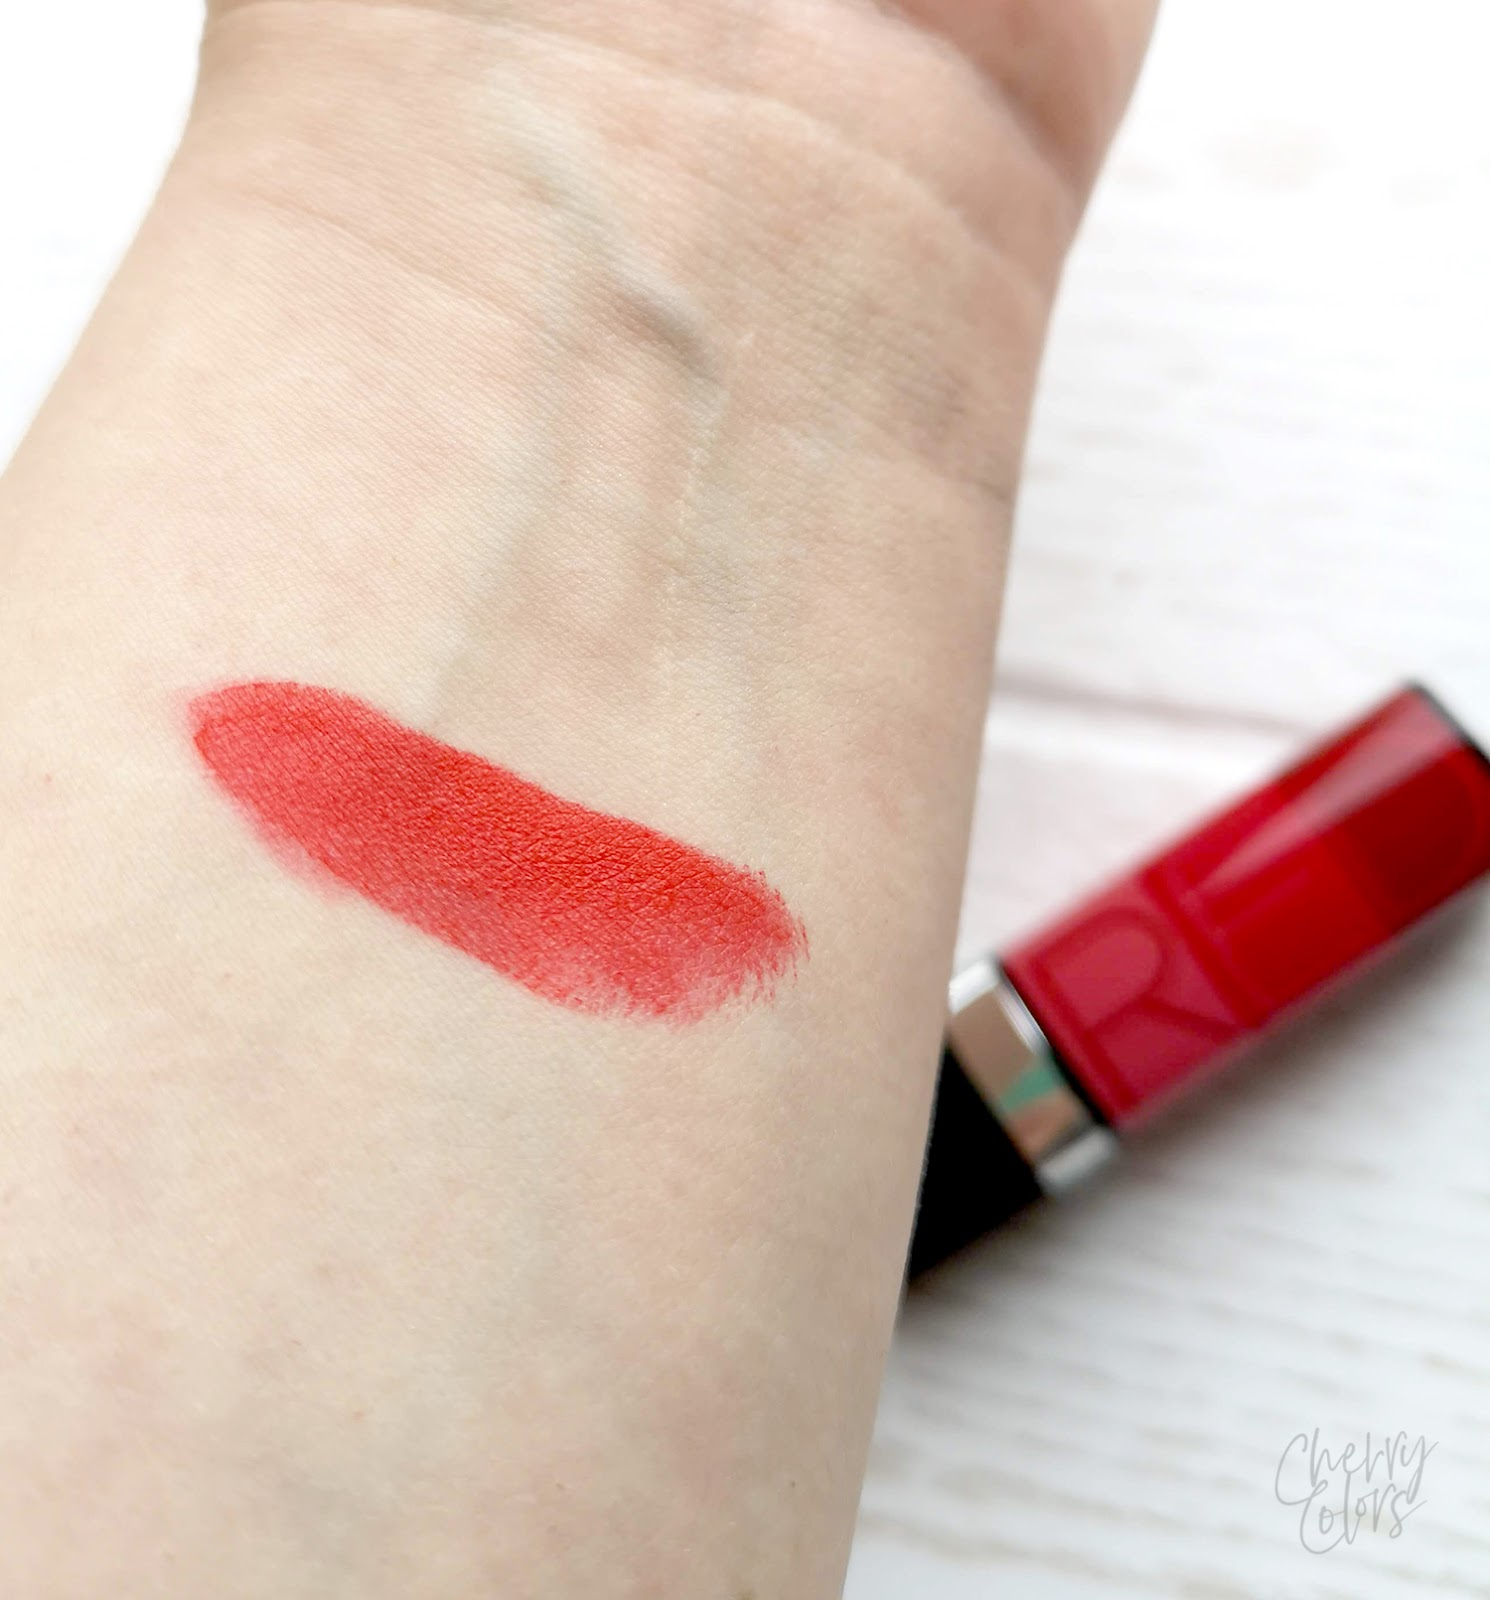 Avon red lipstick